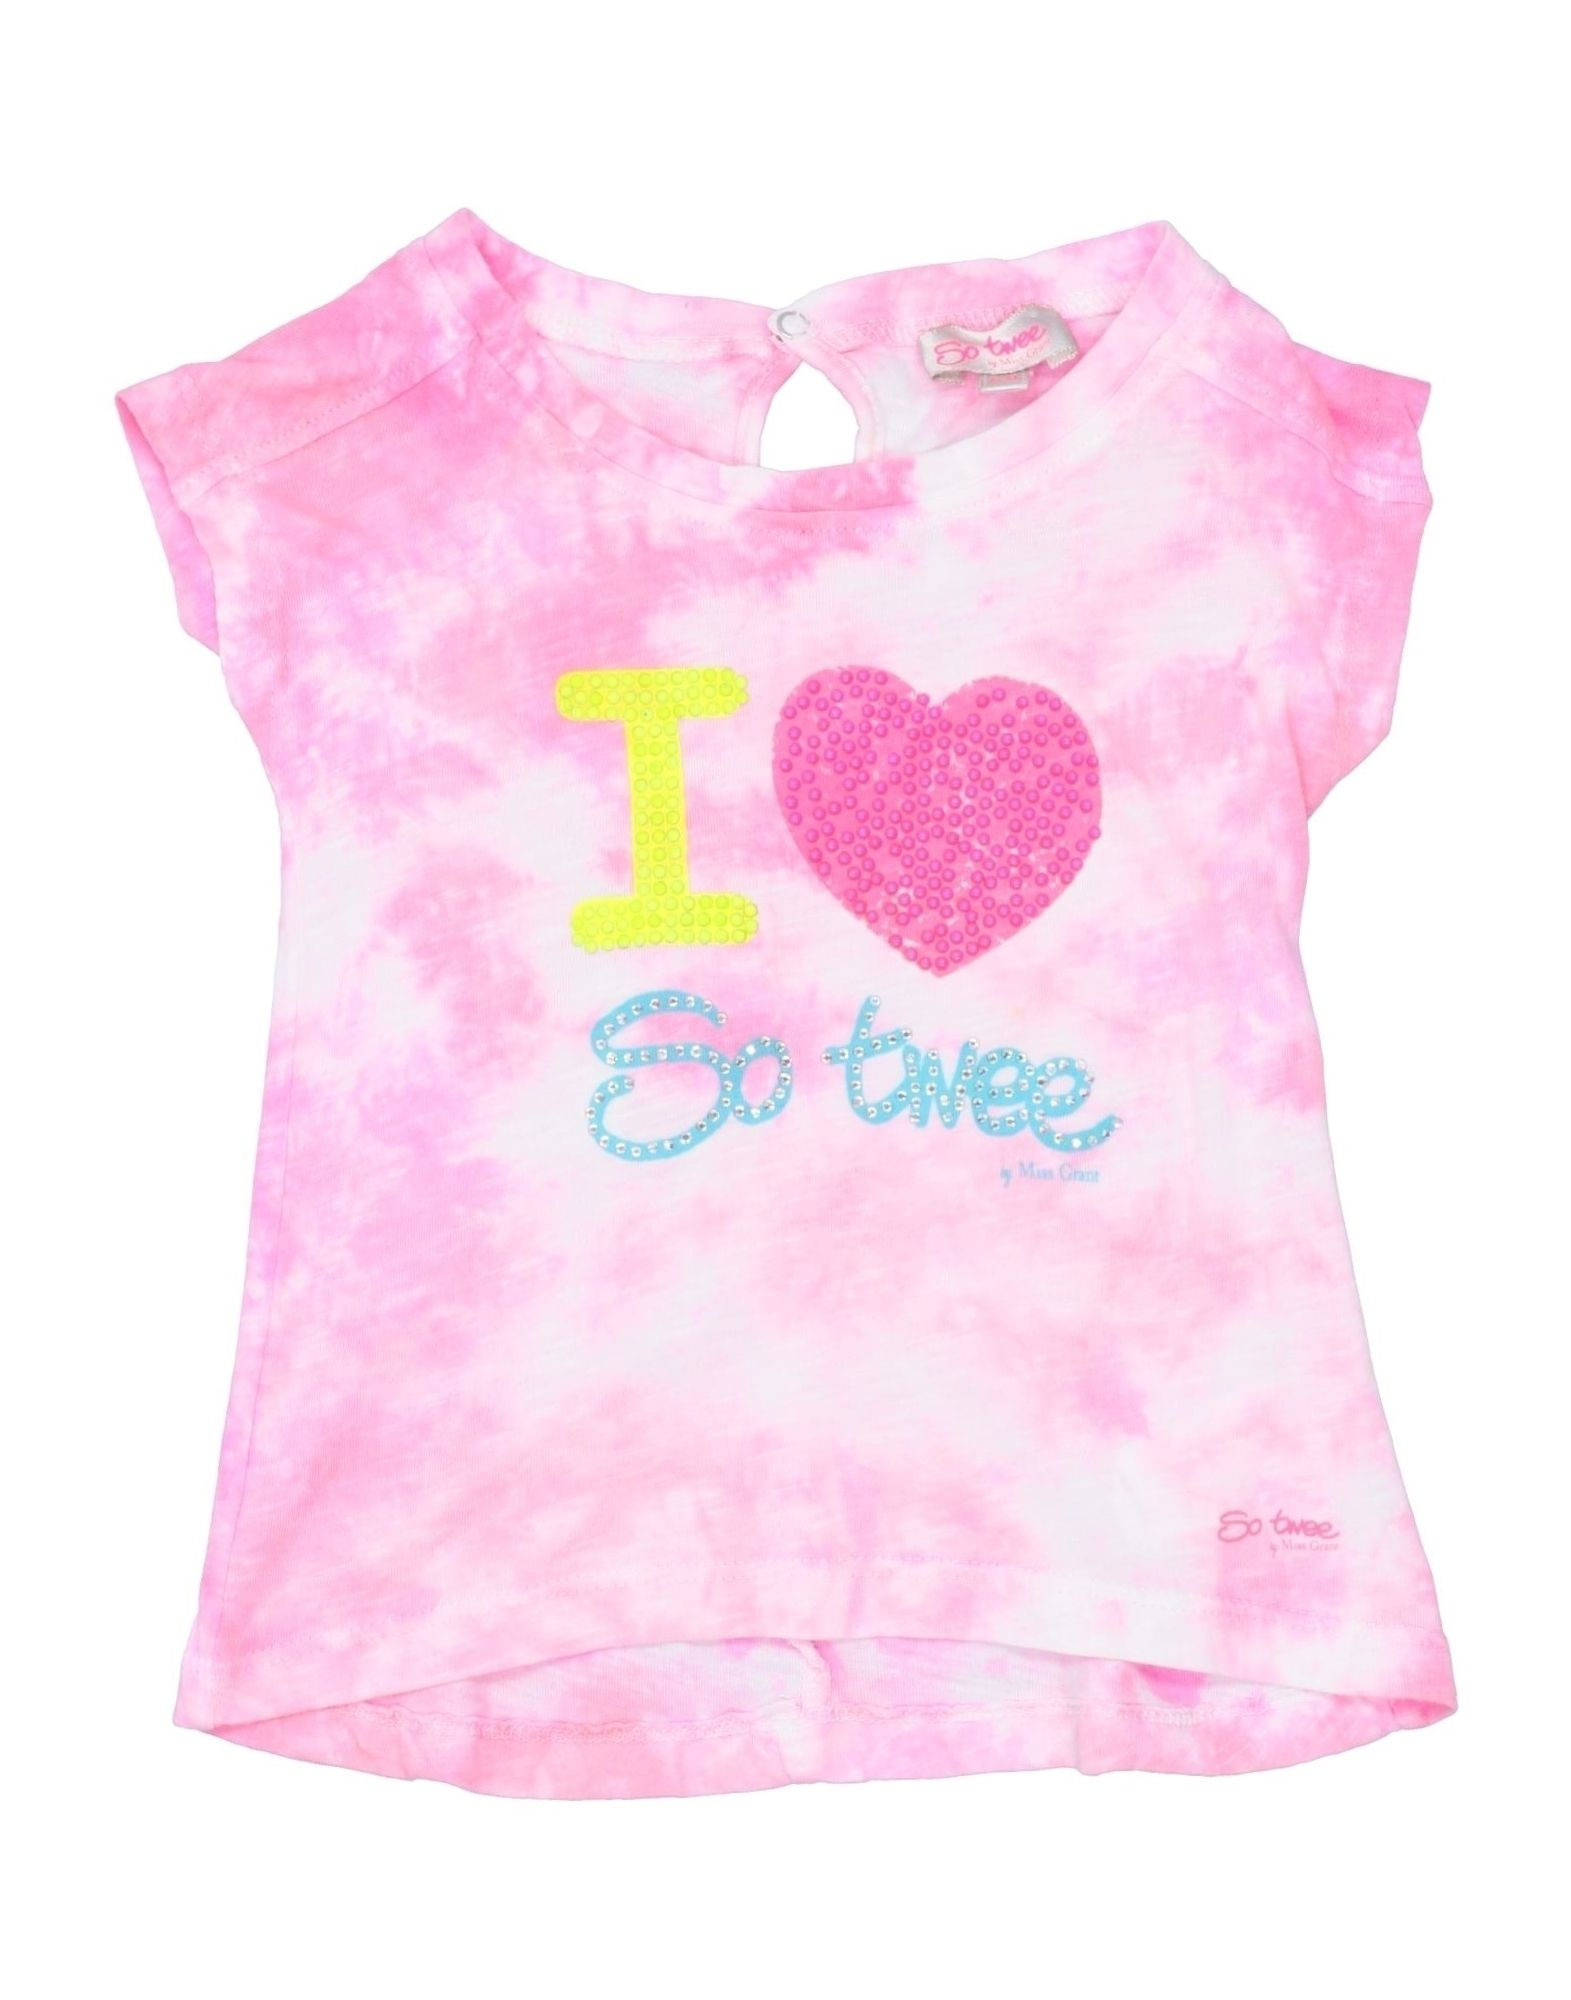 So Twee By Miss Grant Kids' T-shirts In Pink